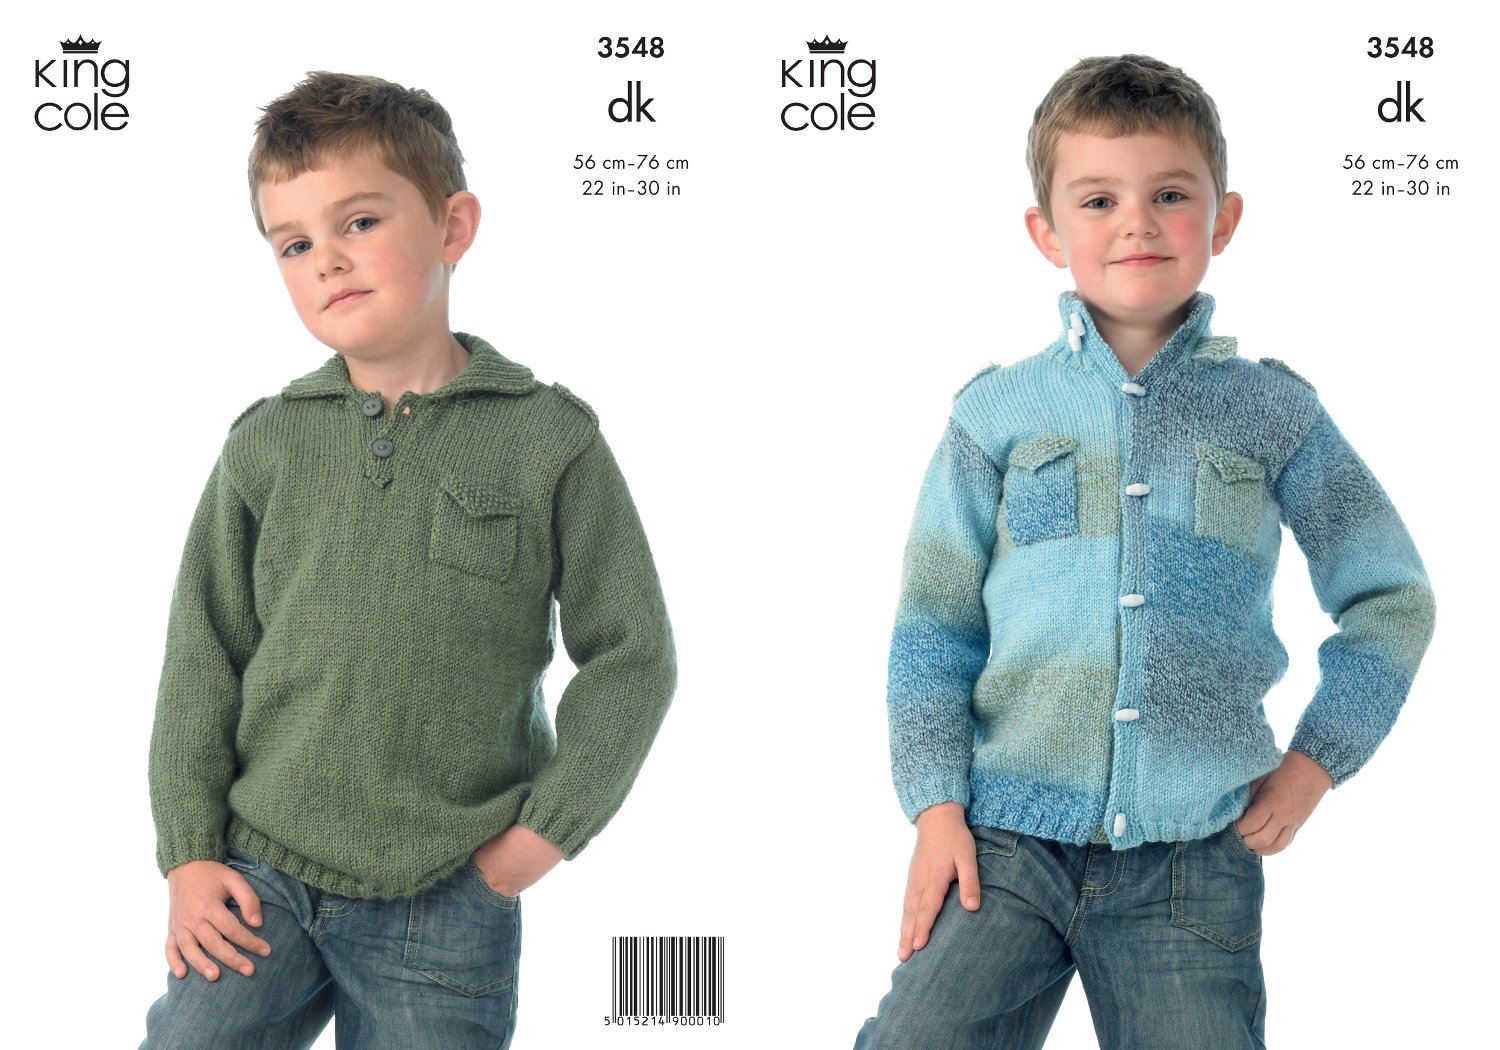 6bb50696c9bd9 King Cole Boys Double Knitting DK Pattern for Long Sleeved Jacket   Sweater  with Pockets 3548  Amazon.co.uk  Kitchen   Home